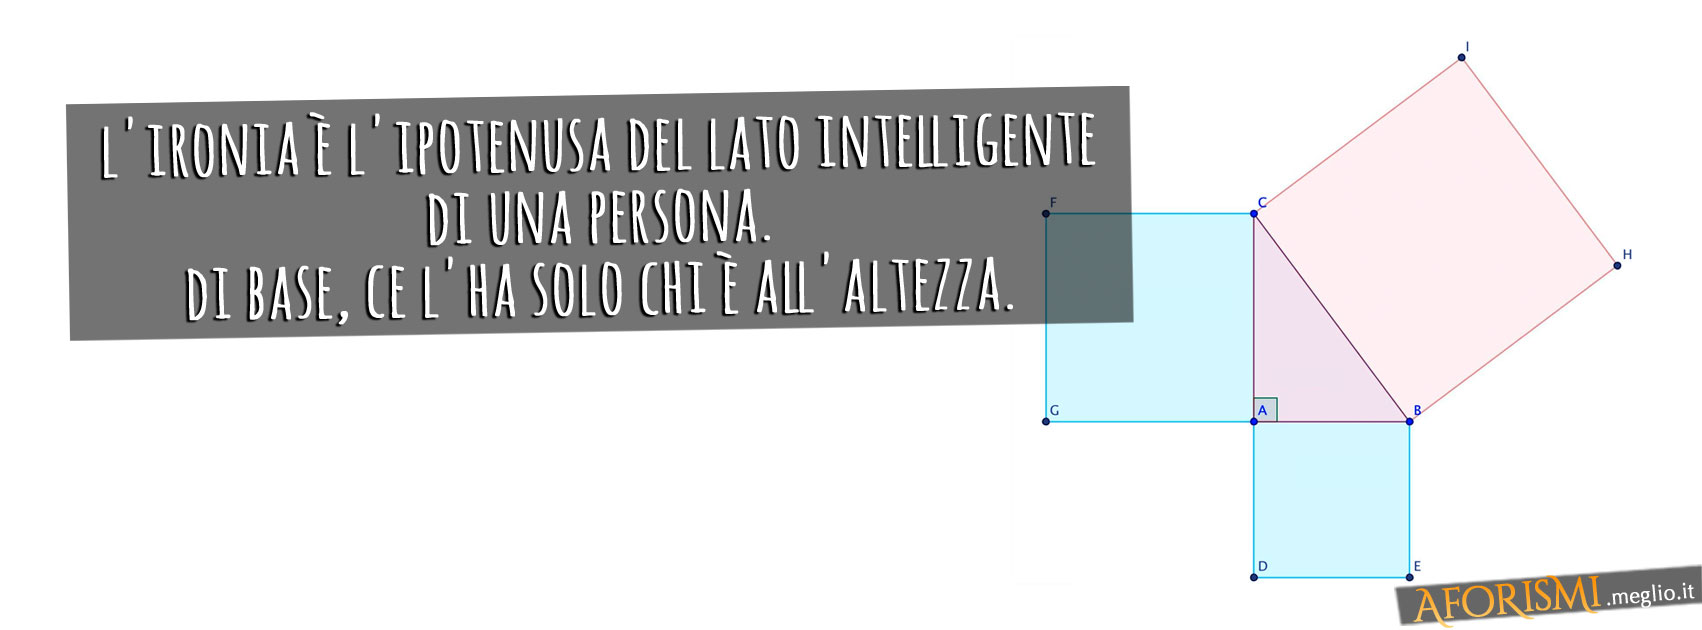 L'Ironia è l'ipotenusa del lato intelligente di una persona. Di base, ce l'ha solo chi è all'altezza.